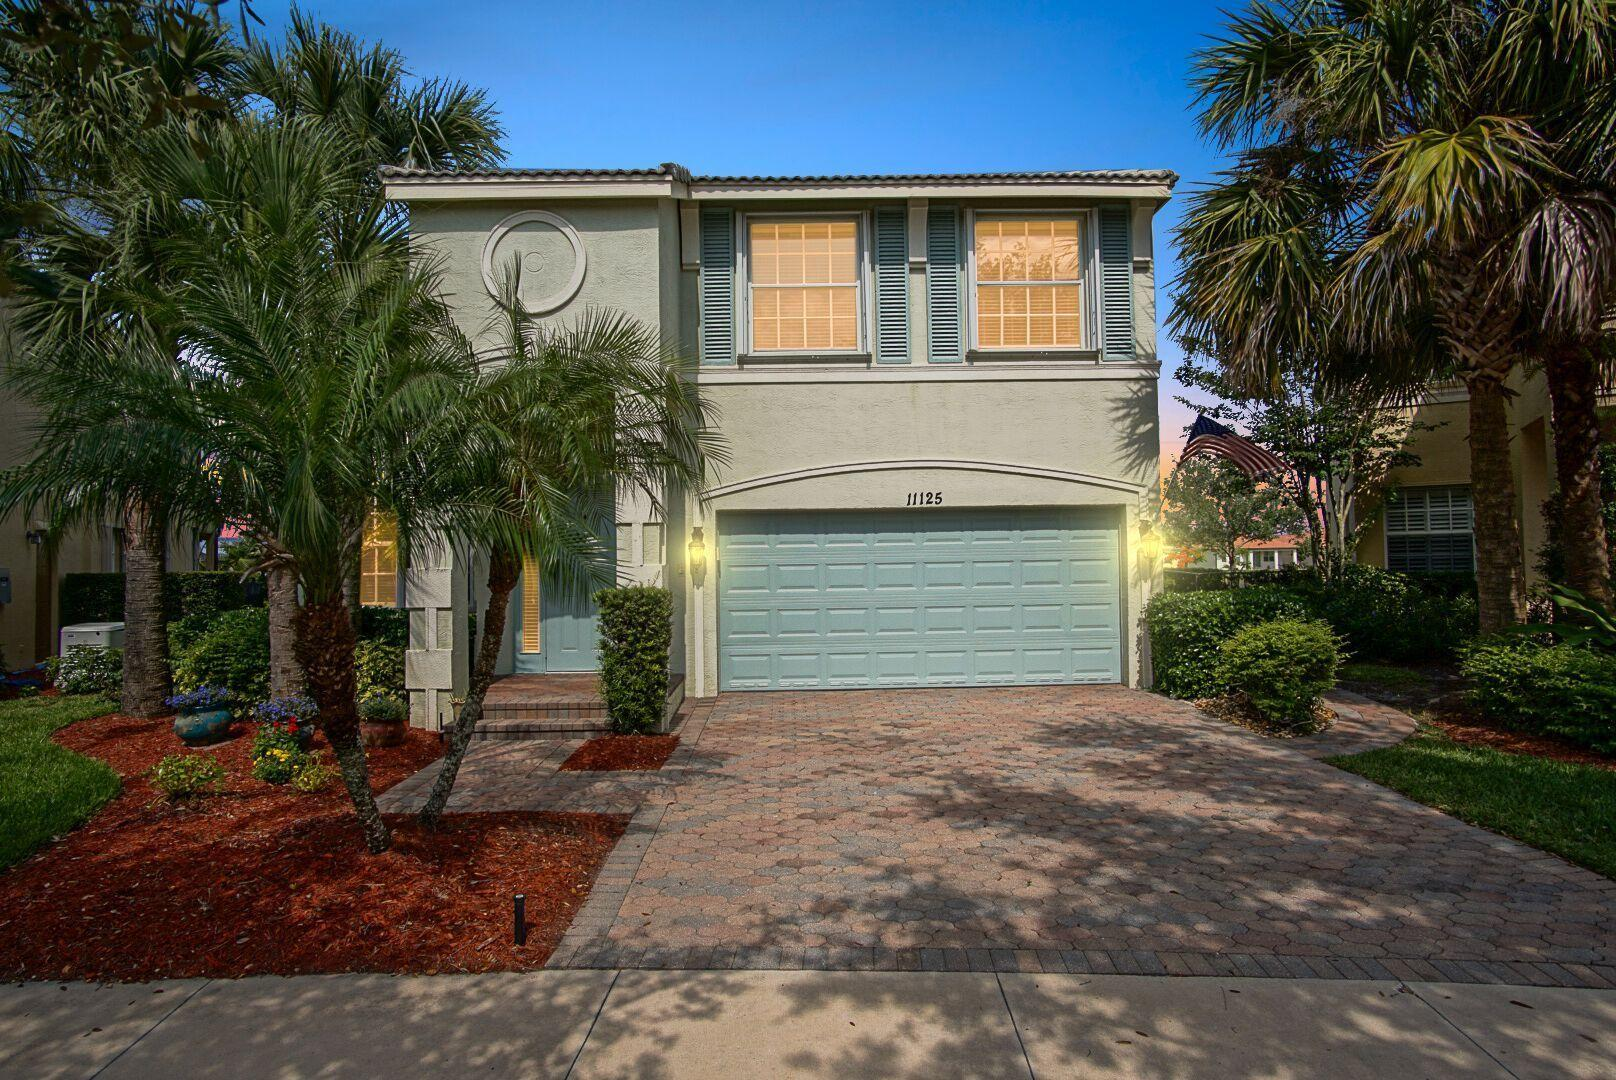 Port Saint Lucie Homes for Sale -  Gated,  11125 SW Springtree Terrace